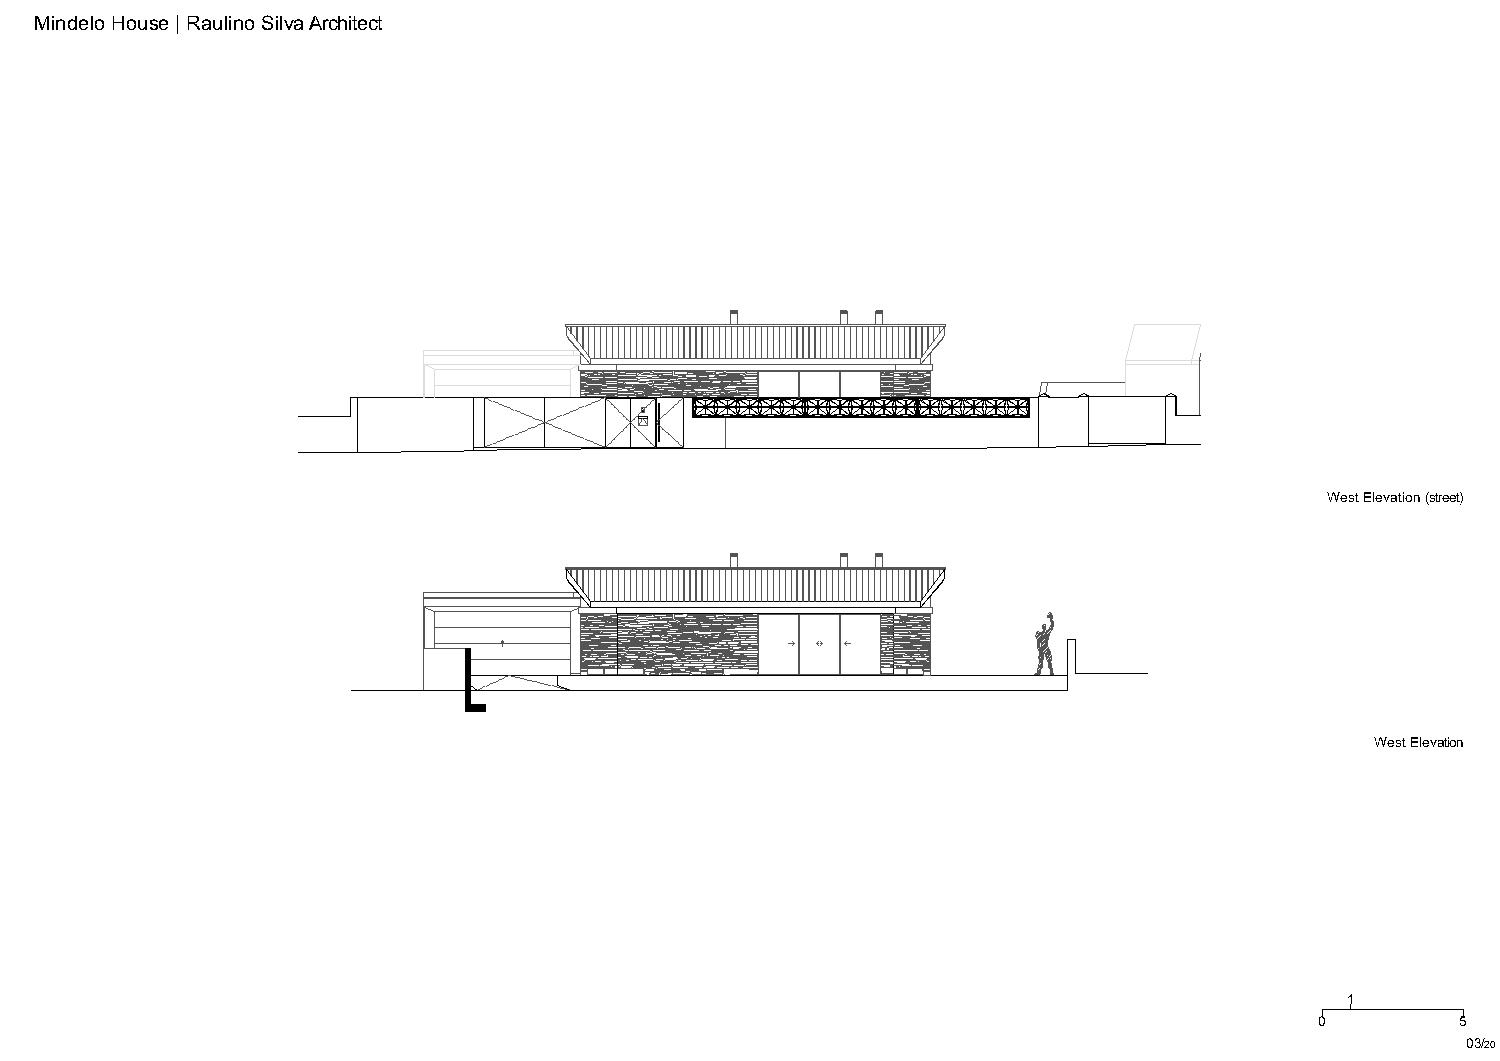 Elevations Raulino Silva Architect}